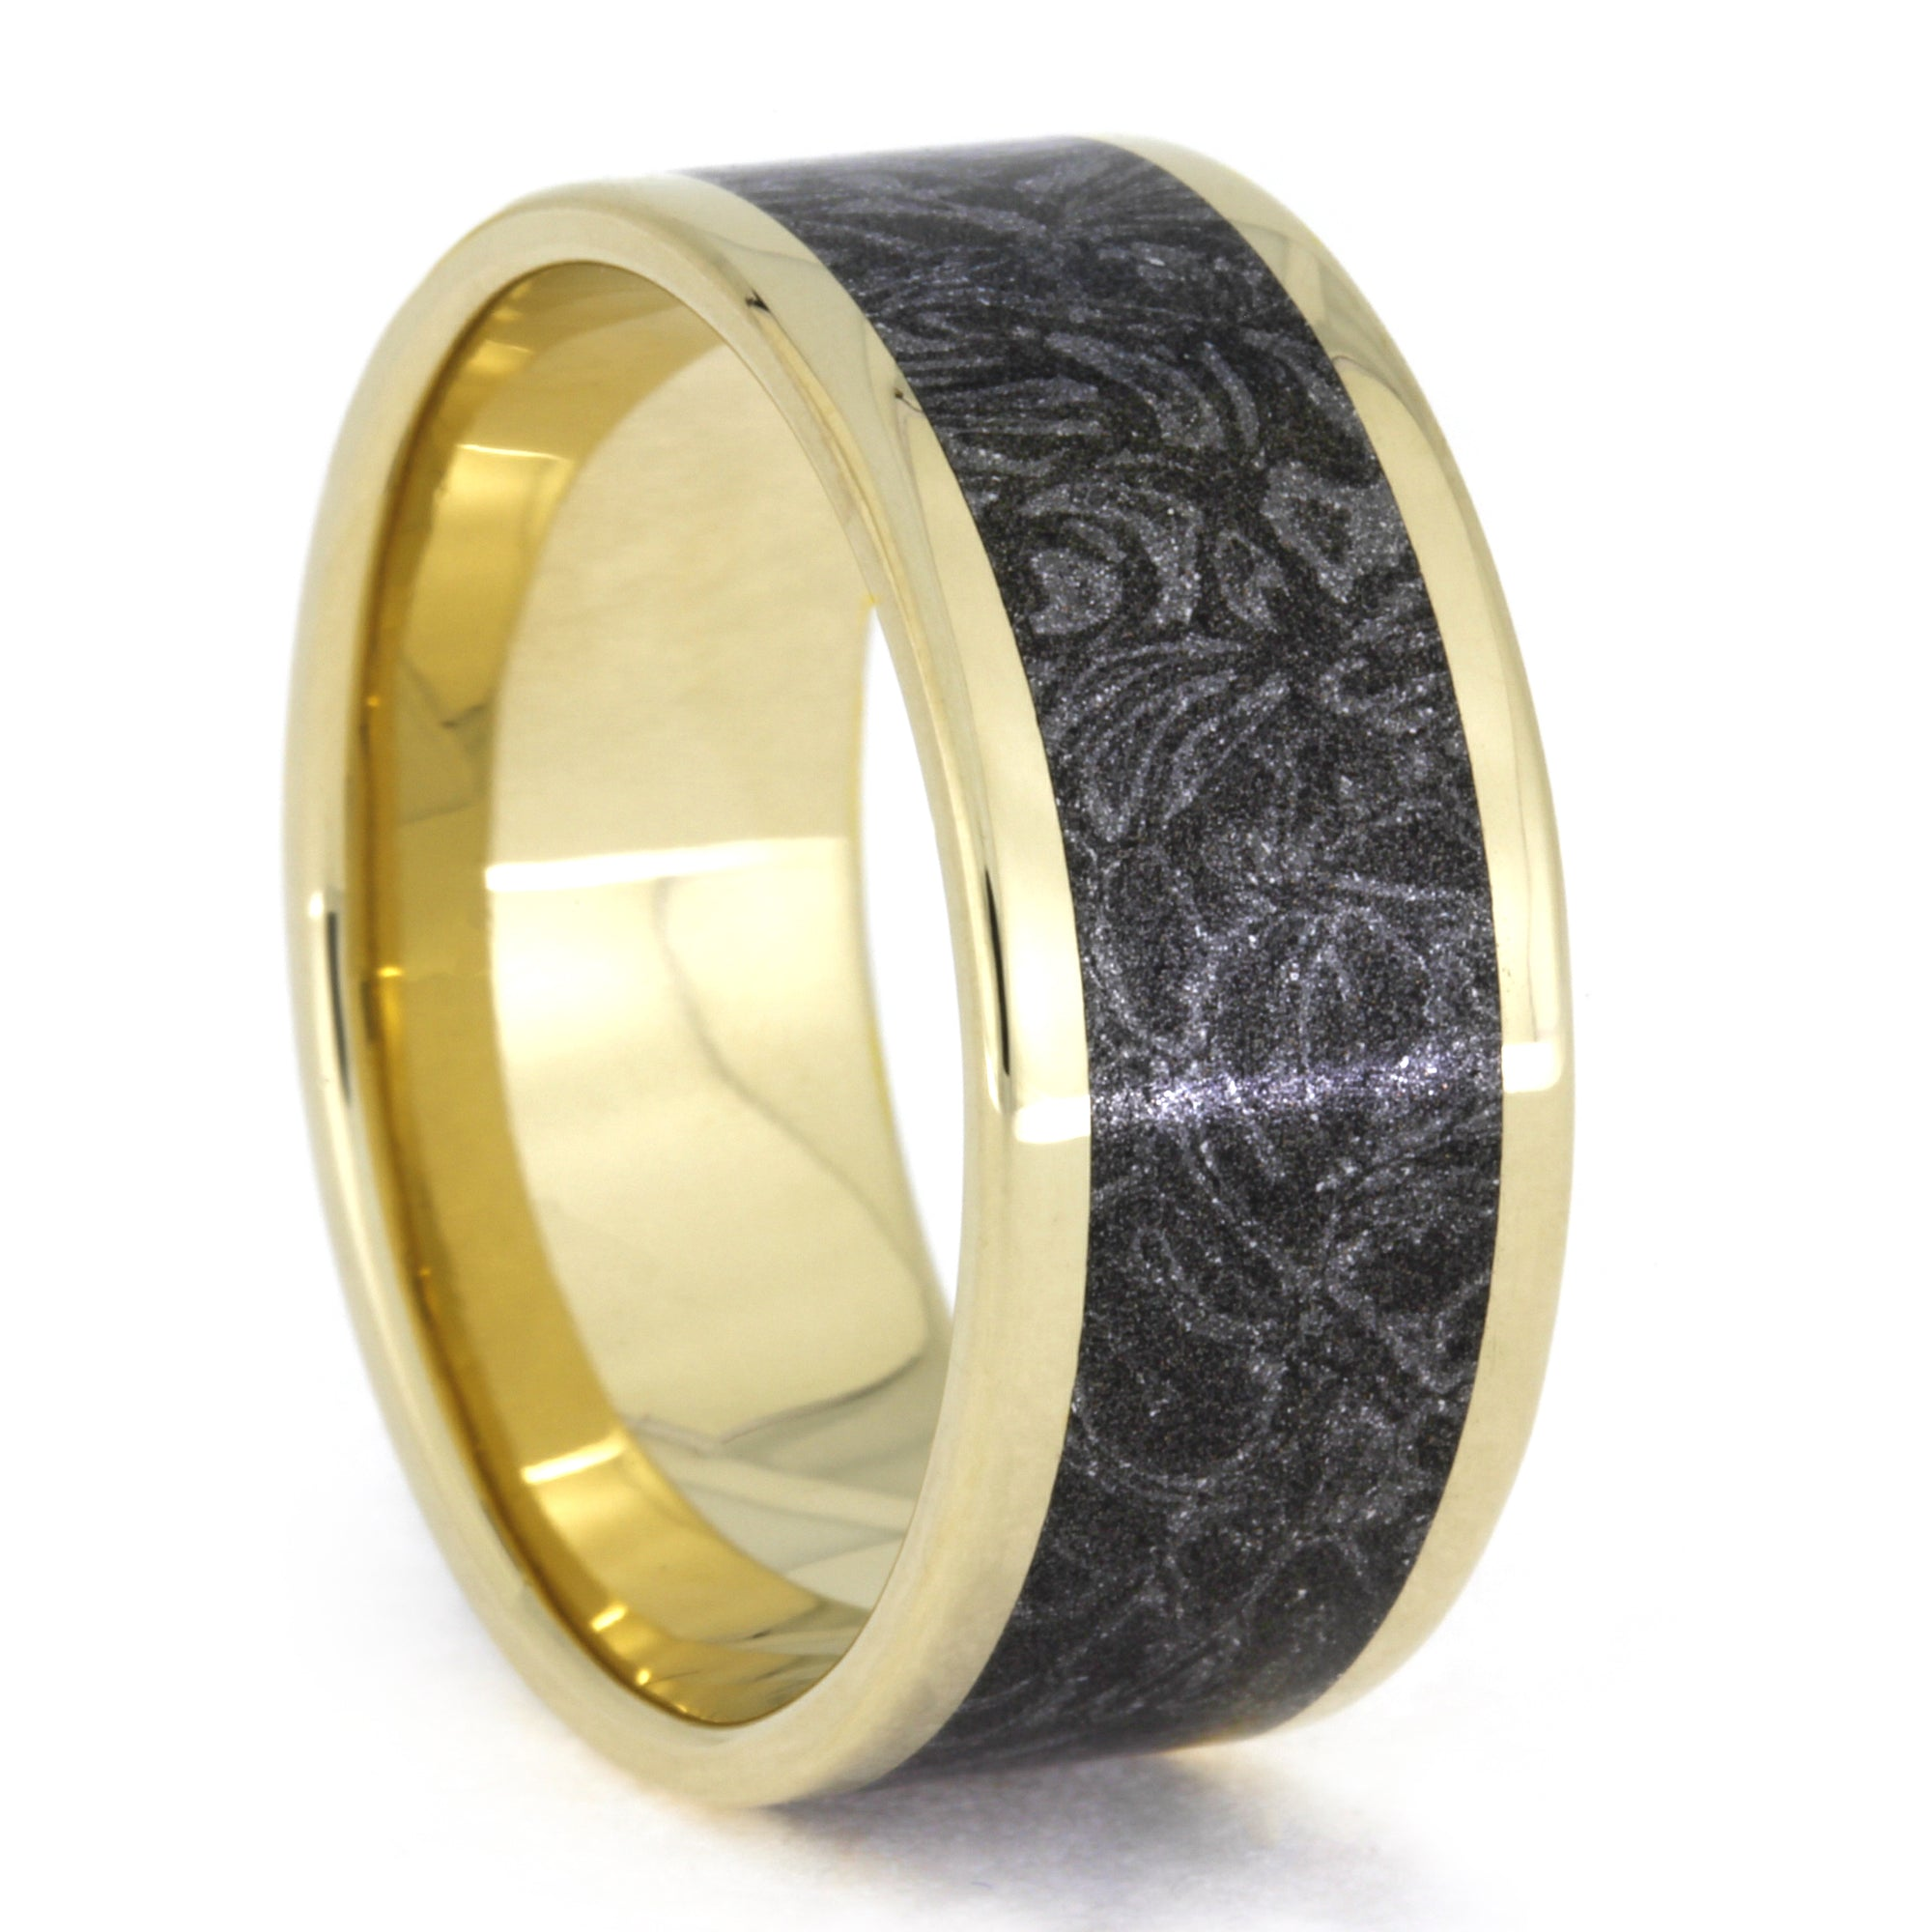 Black and White Mokume Gane Ring in Yellow Gold, Size 12.25-RS10317 - Jewelry by Johan